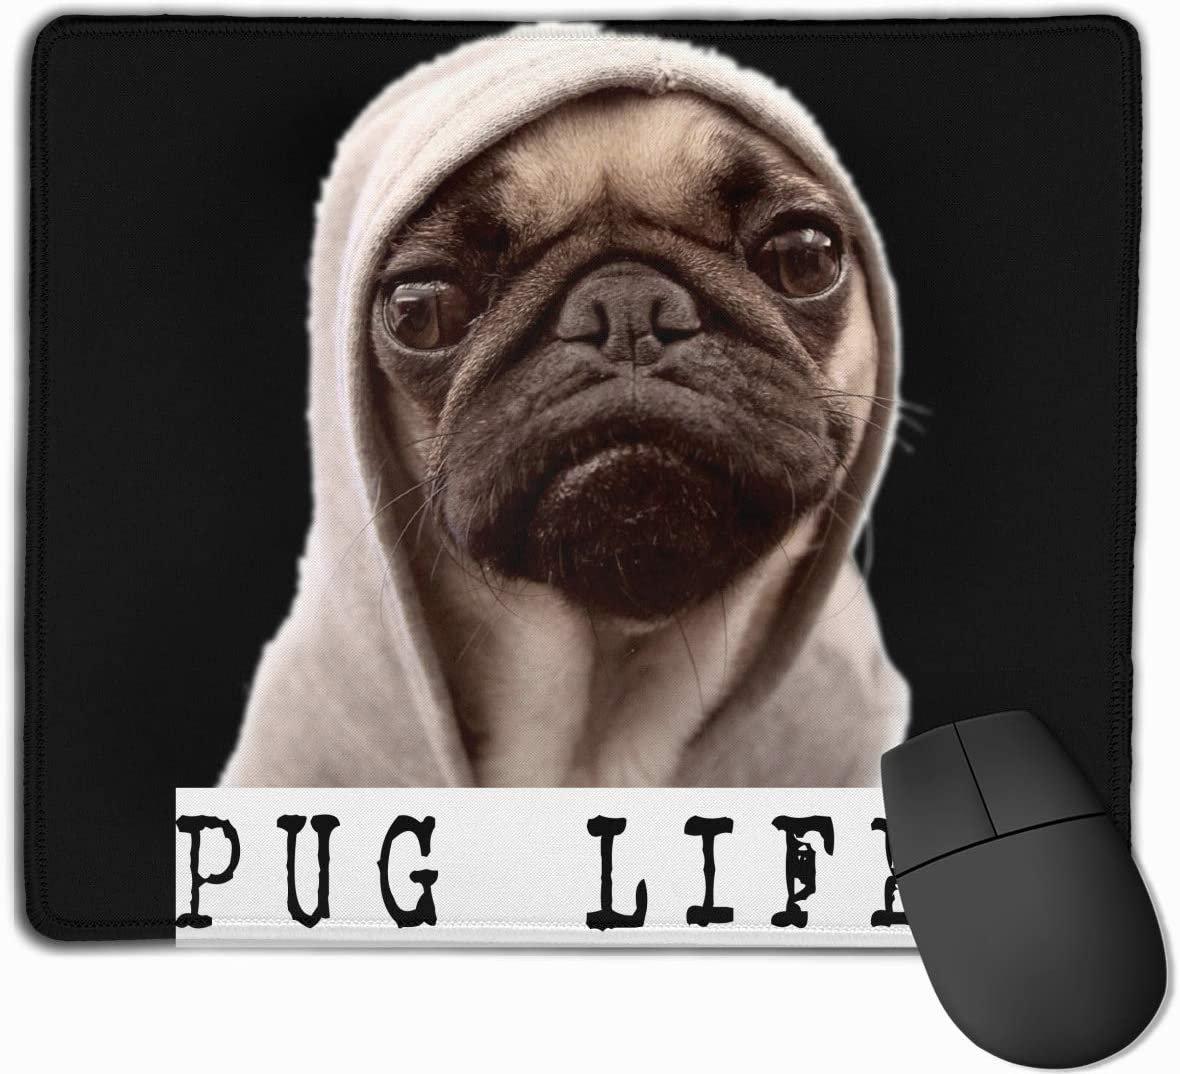 Cute Large Mouse Pad with Animal Design Funny Pug Dog Life Print for Computer Office Gaming,11.8x9.8x0.09 Inch